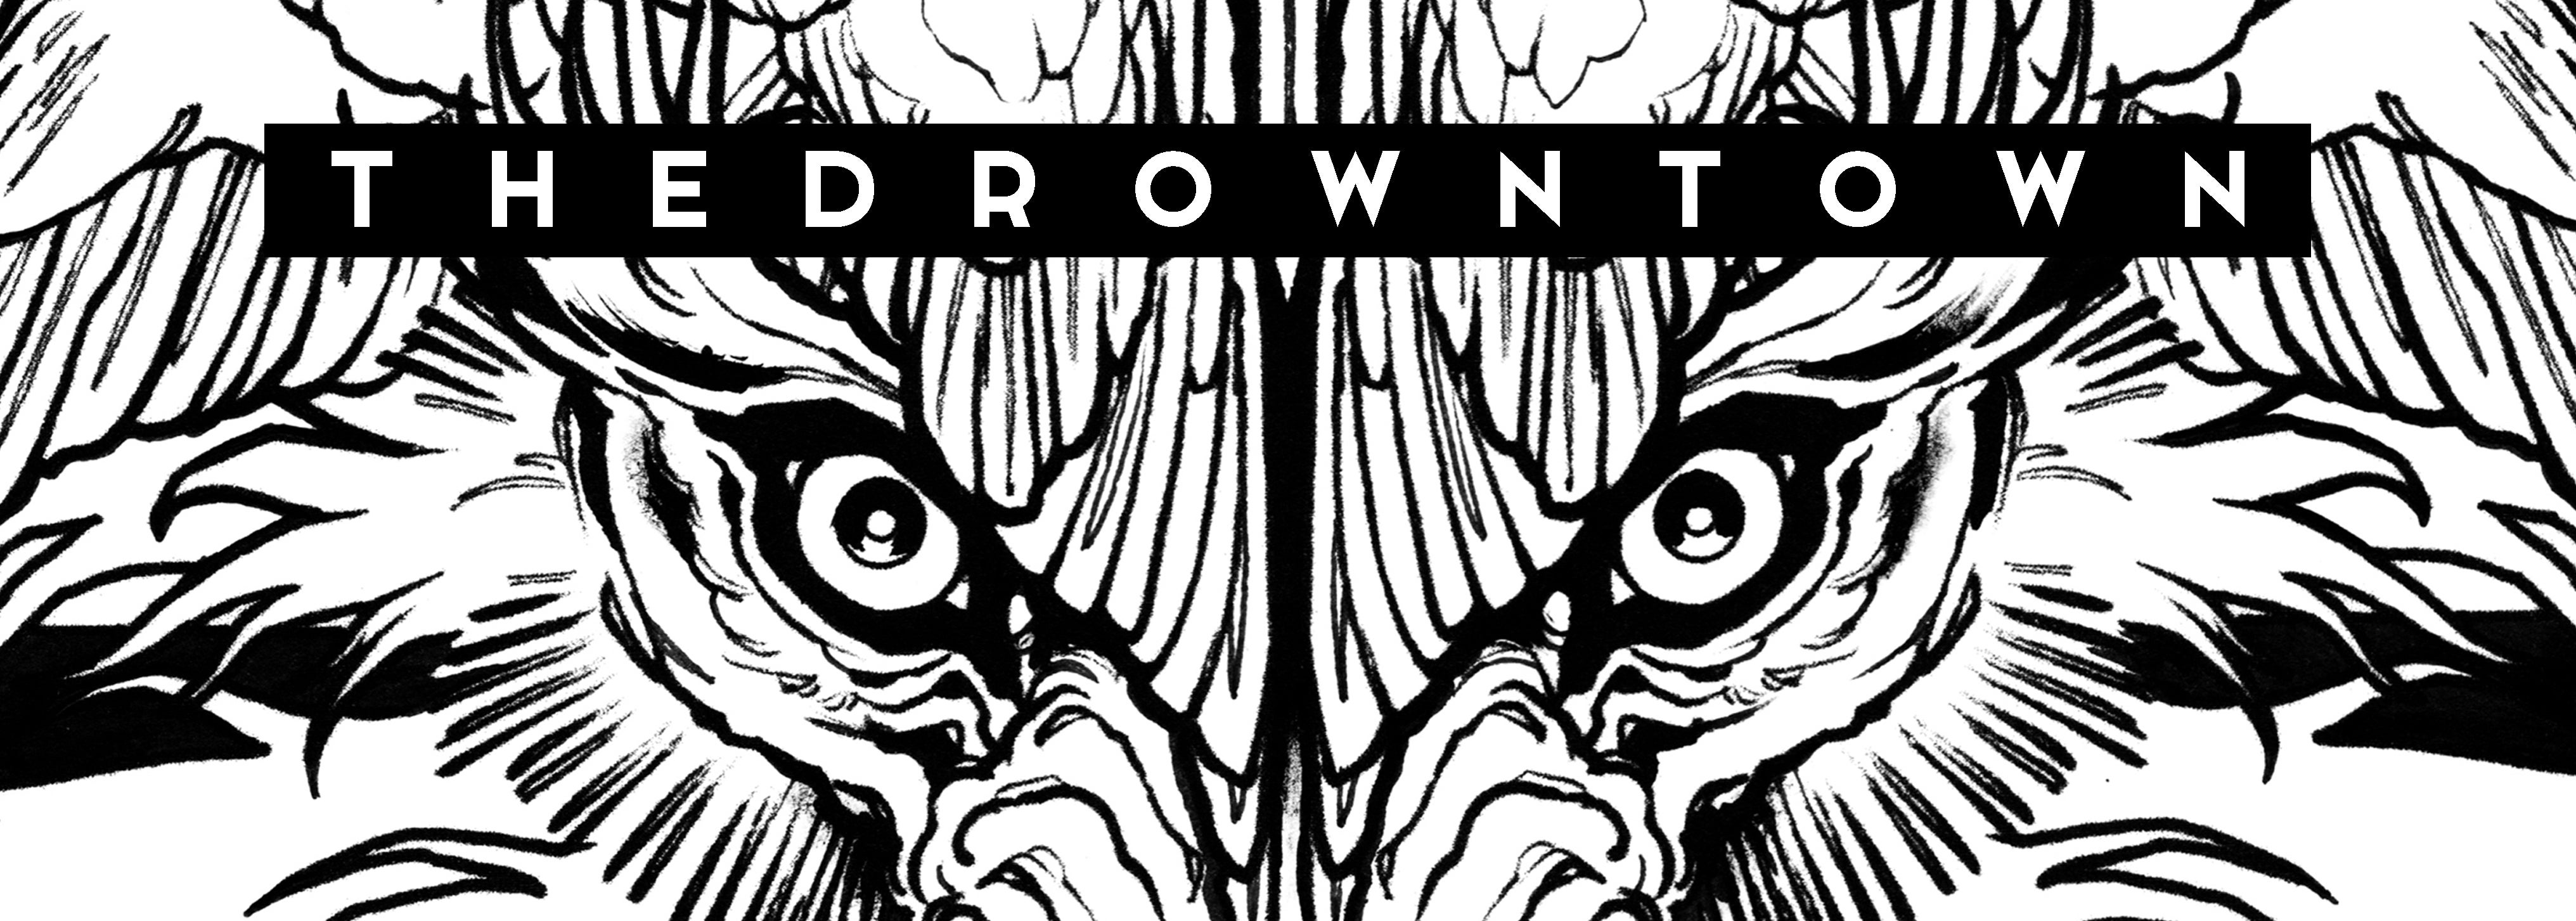 thedrowntown